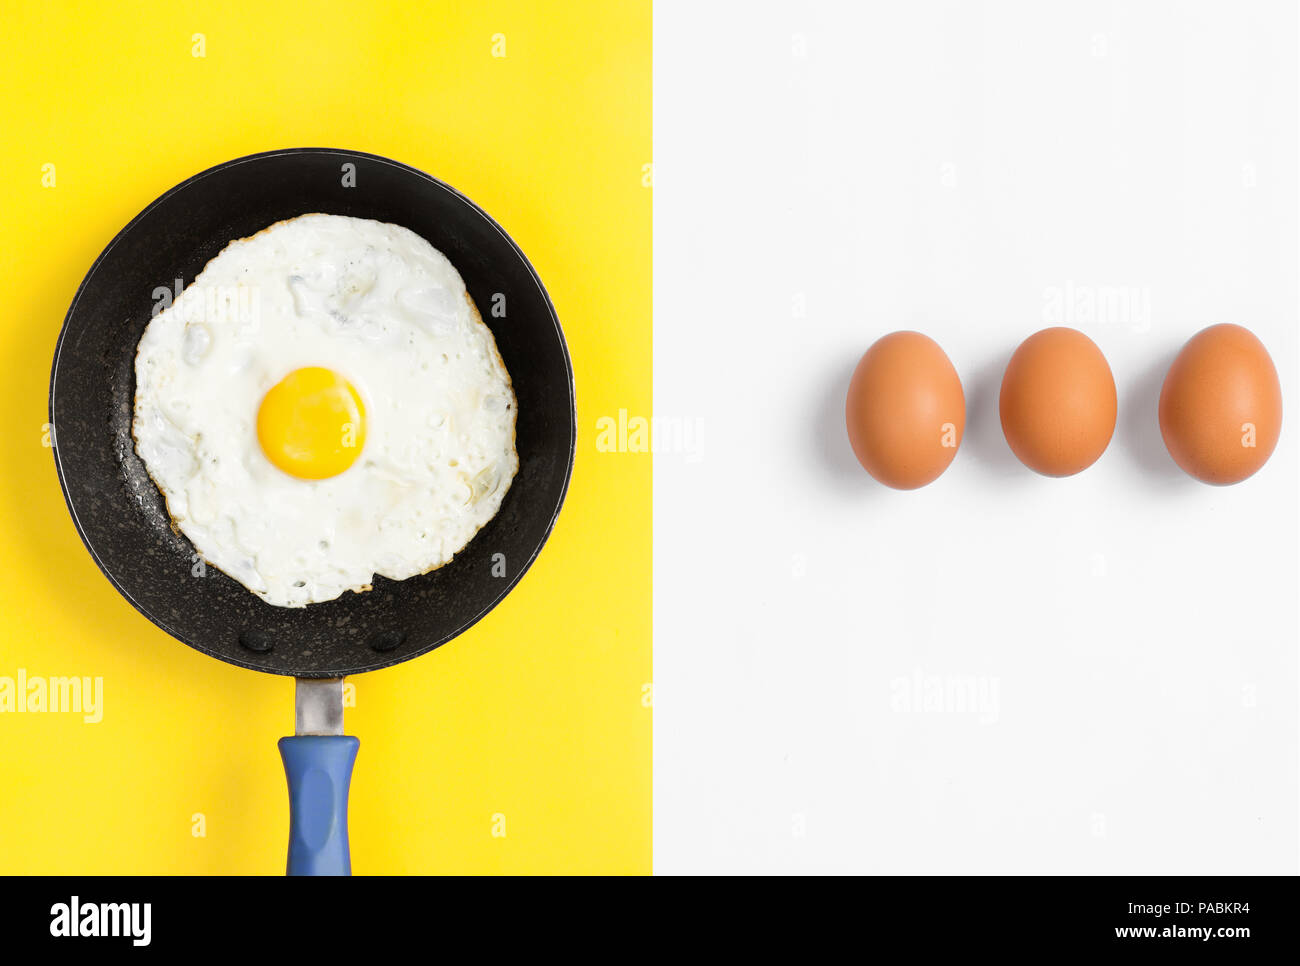 Split color flat lay image with cooked egg in a a pan and uncooked eggs lined up. - Stock Image